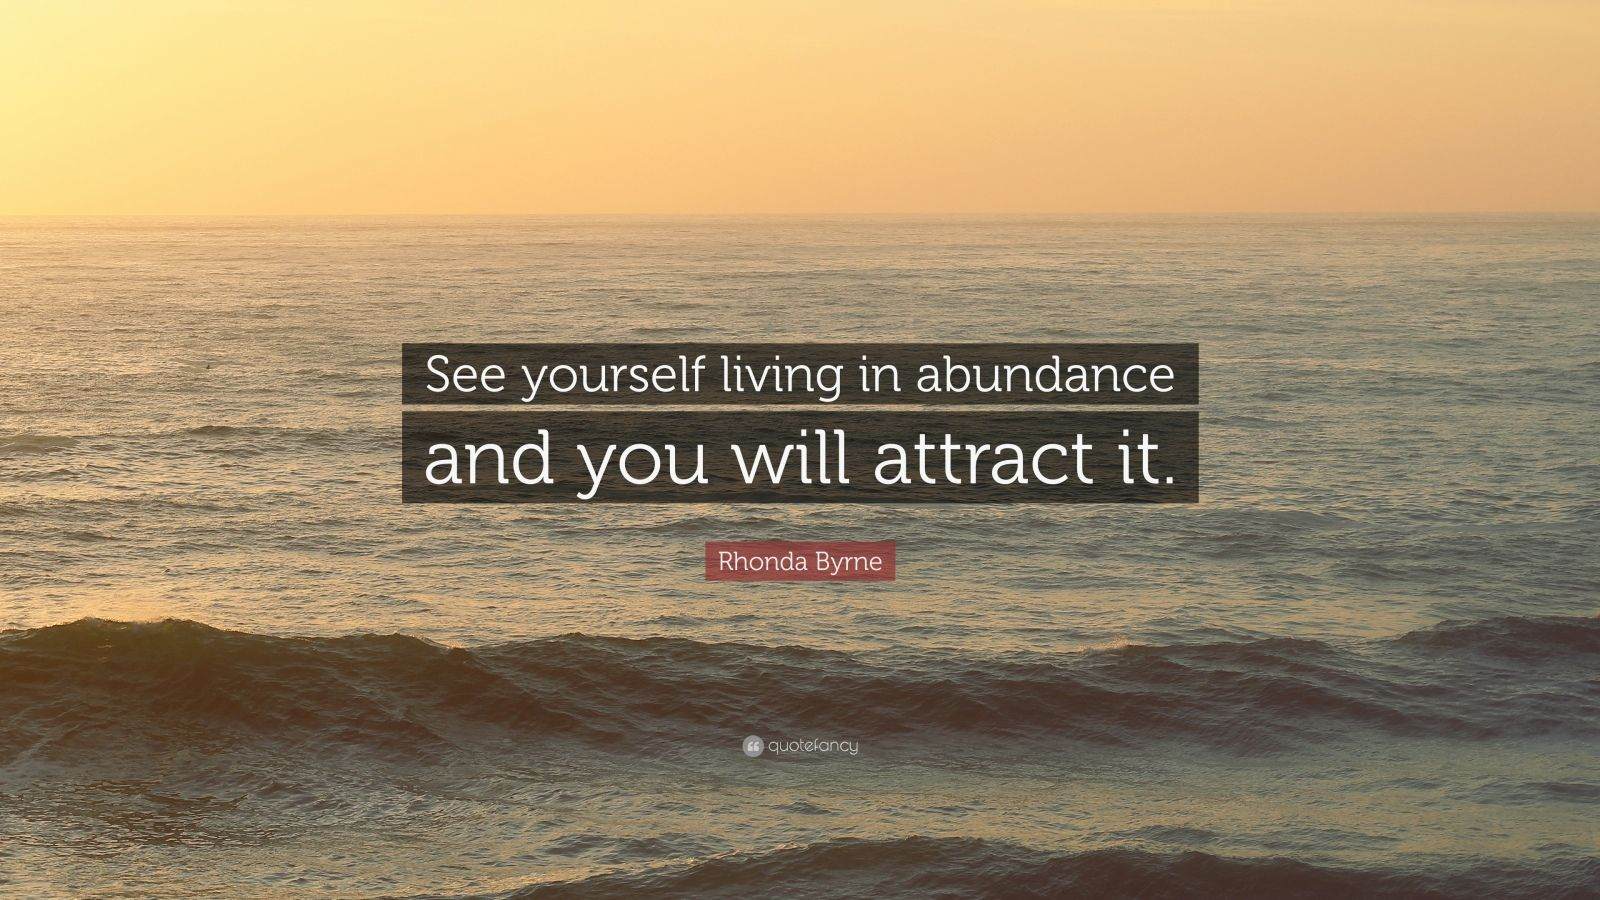 """Rhonda Byrne Quote: """"See yourself living in abundance and you will attract it."""""""